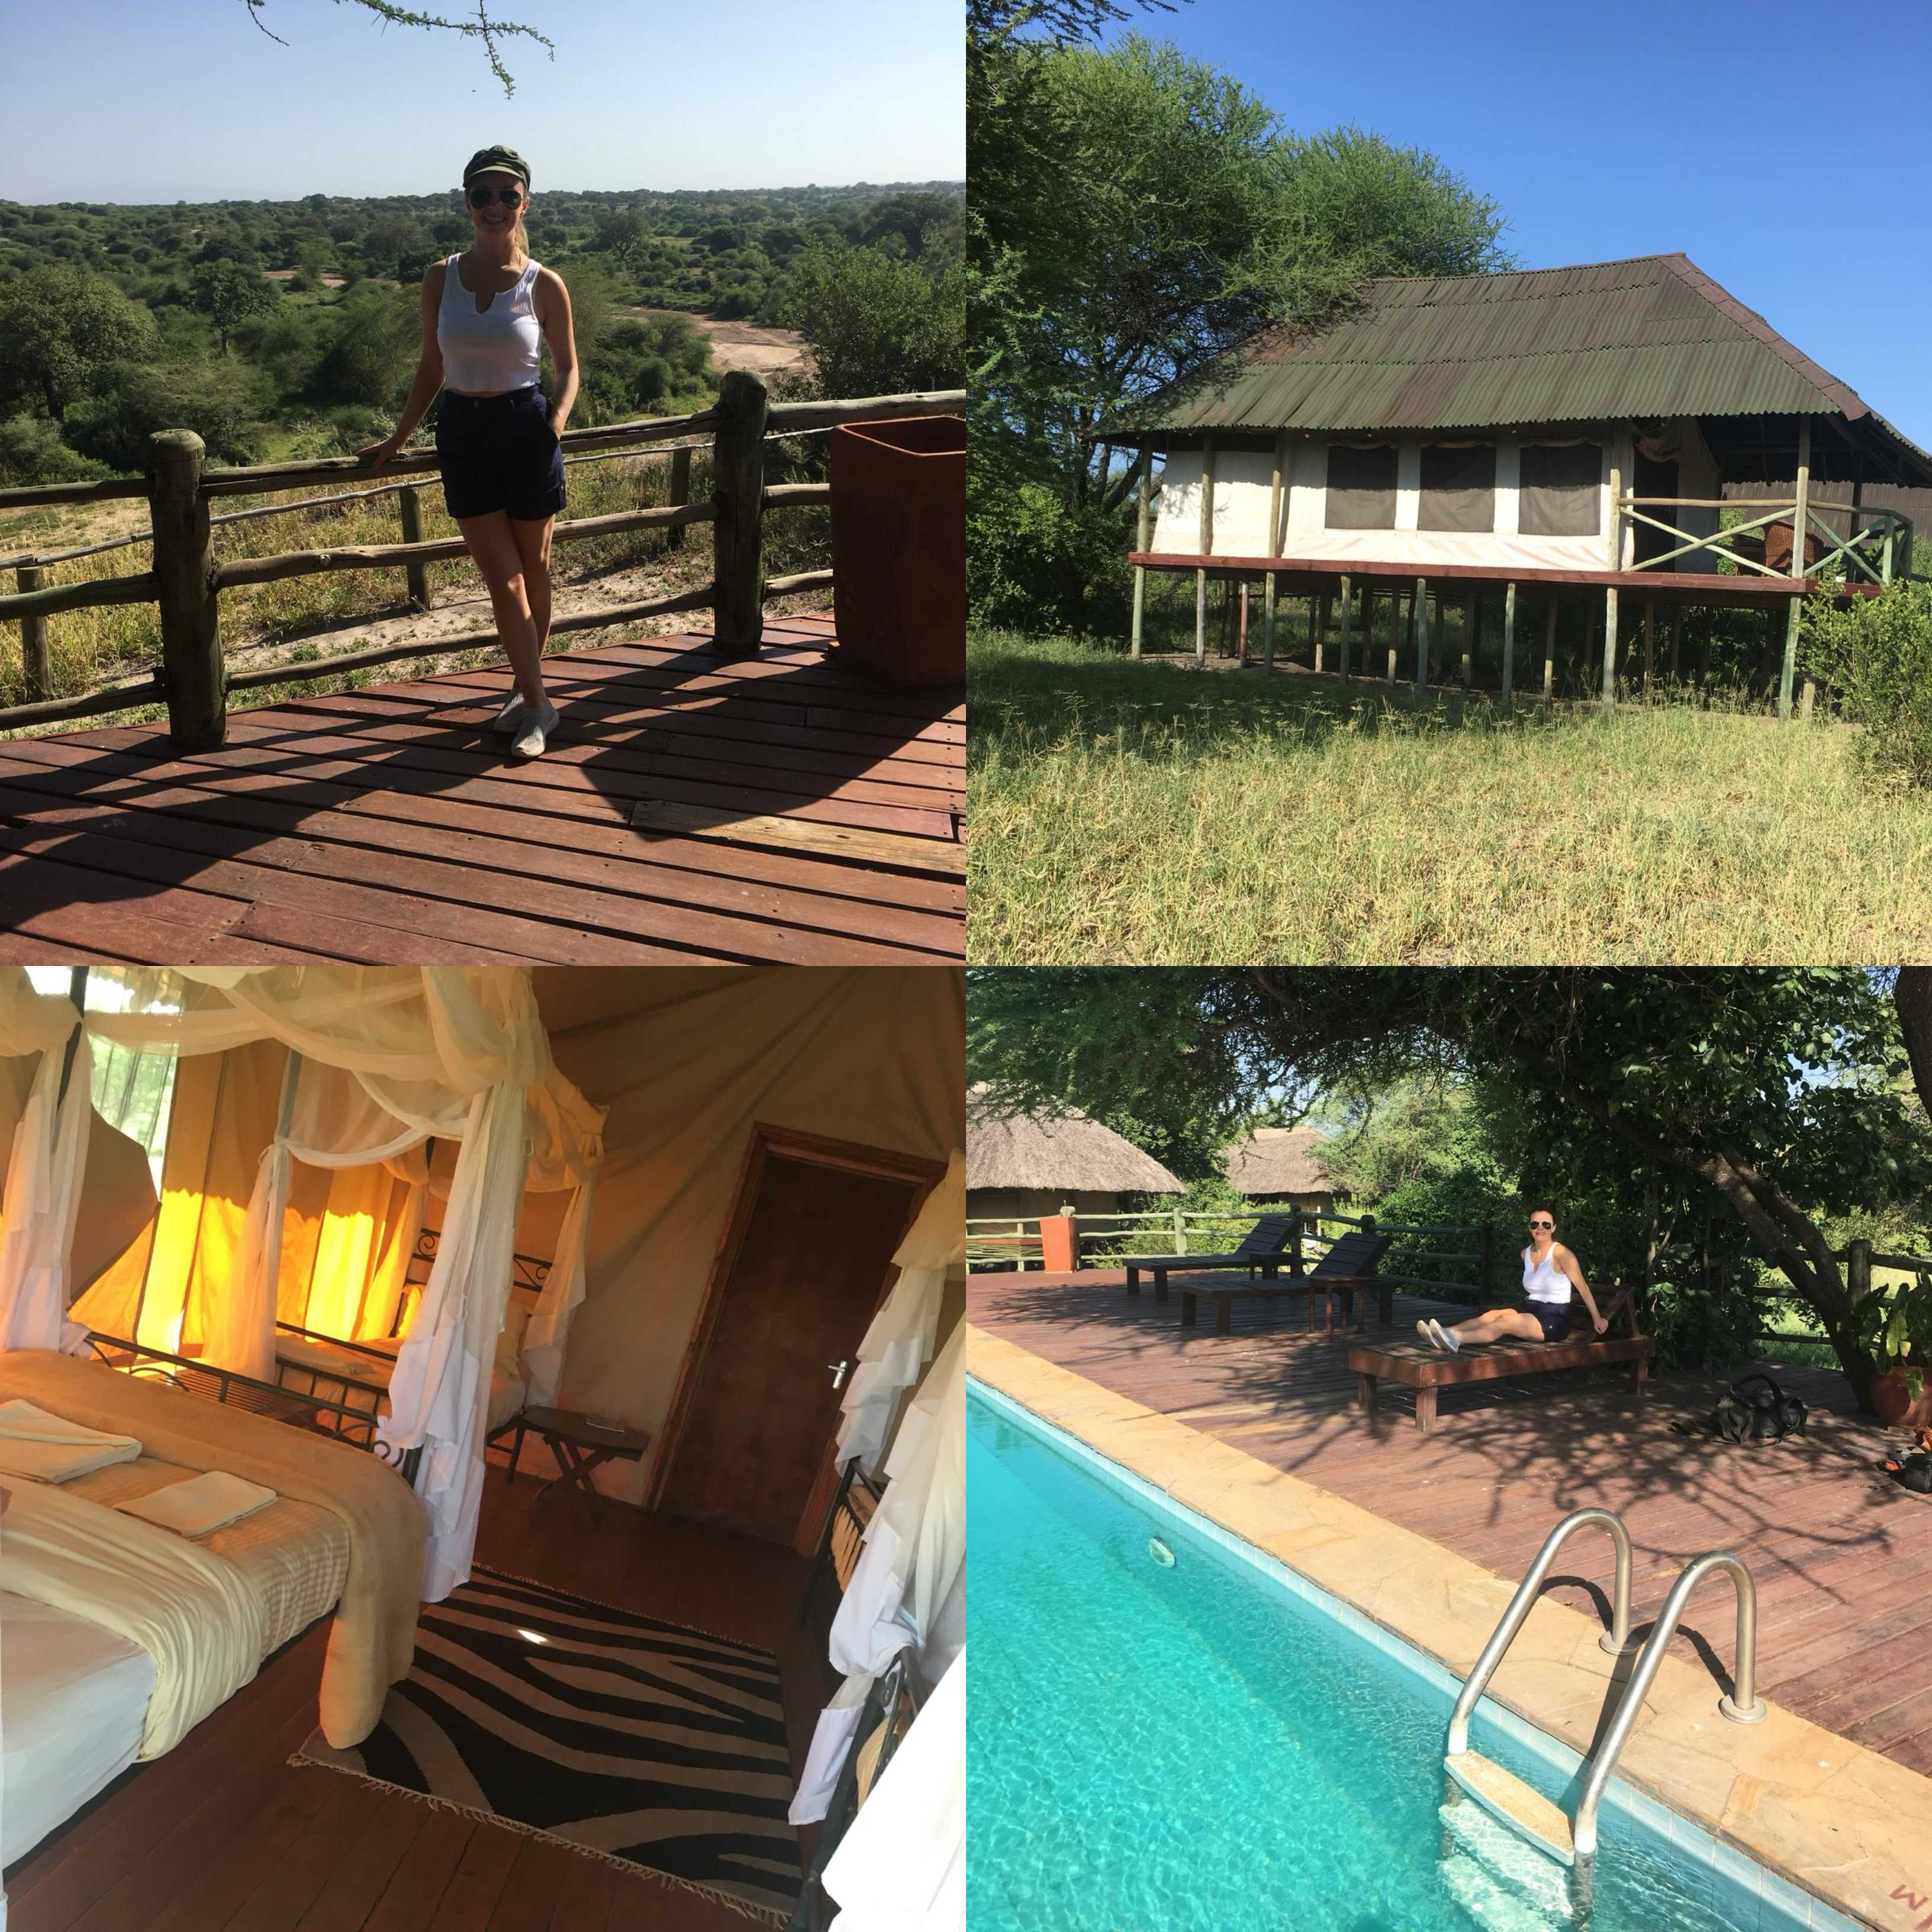 Mbali Mbali River Camp | Lisa's African Adventure | Erne Travel